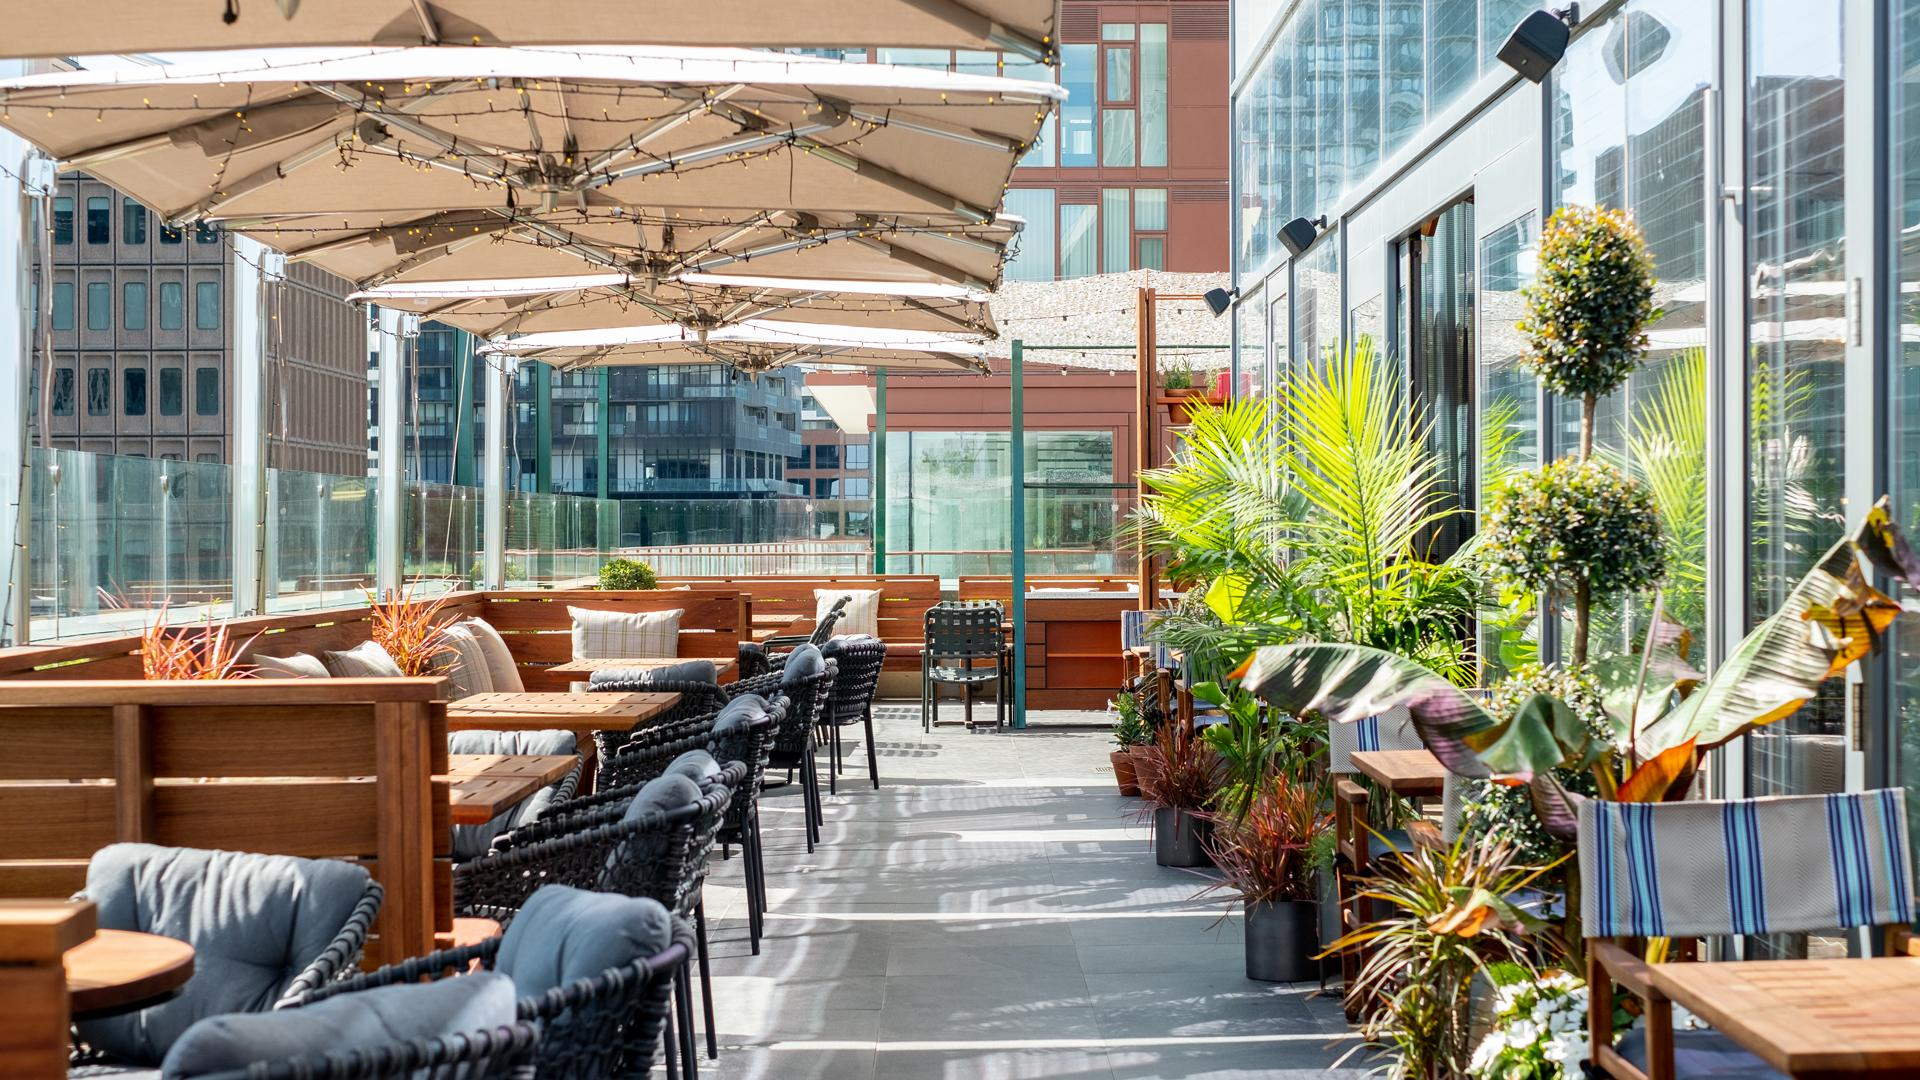 The best rooftop patios in Toronto | The rooftop garden patio at Stock Bar